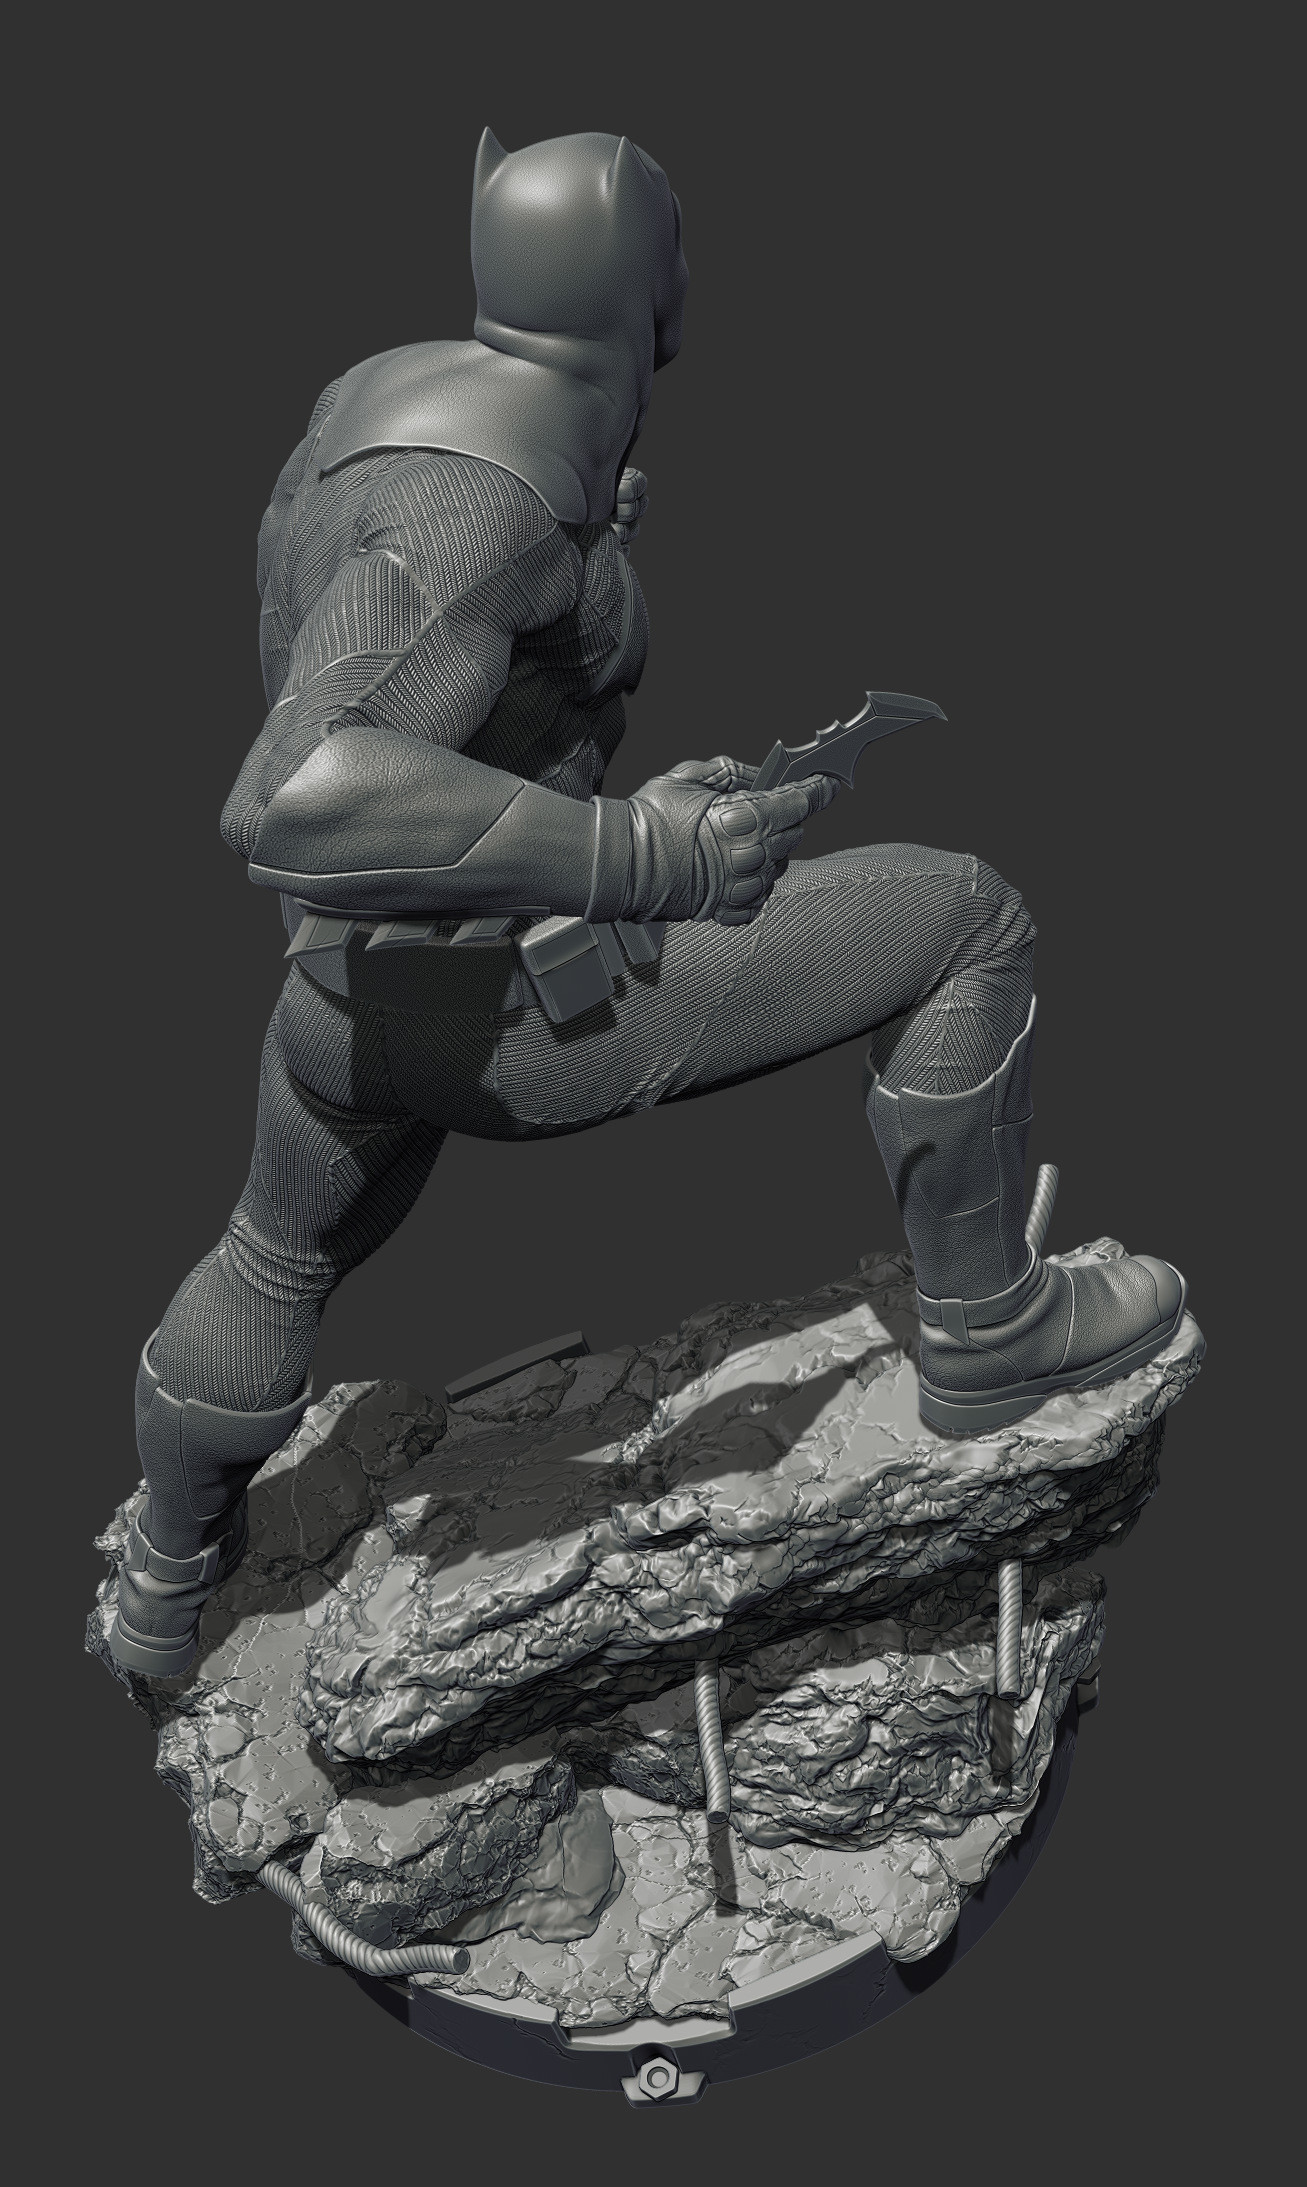 David giraud zbrush document6